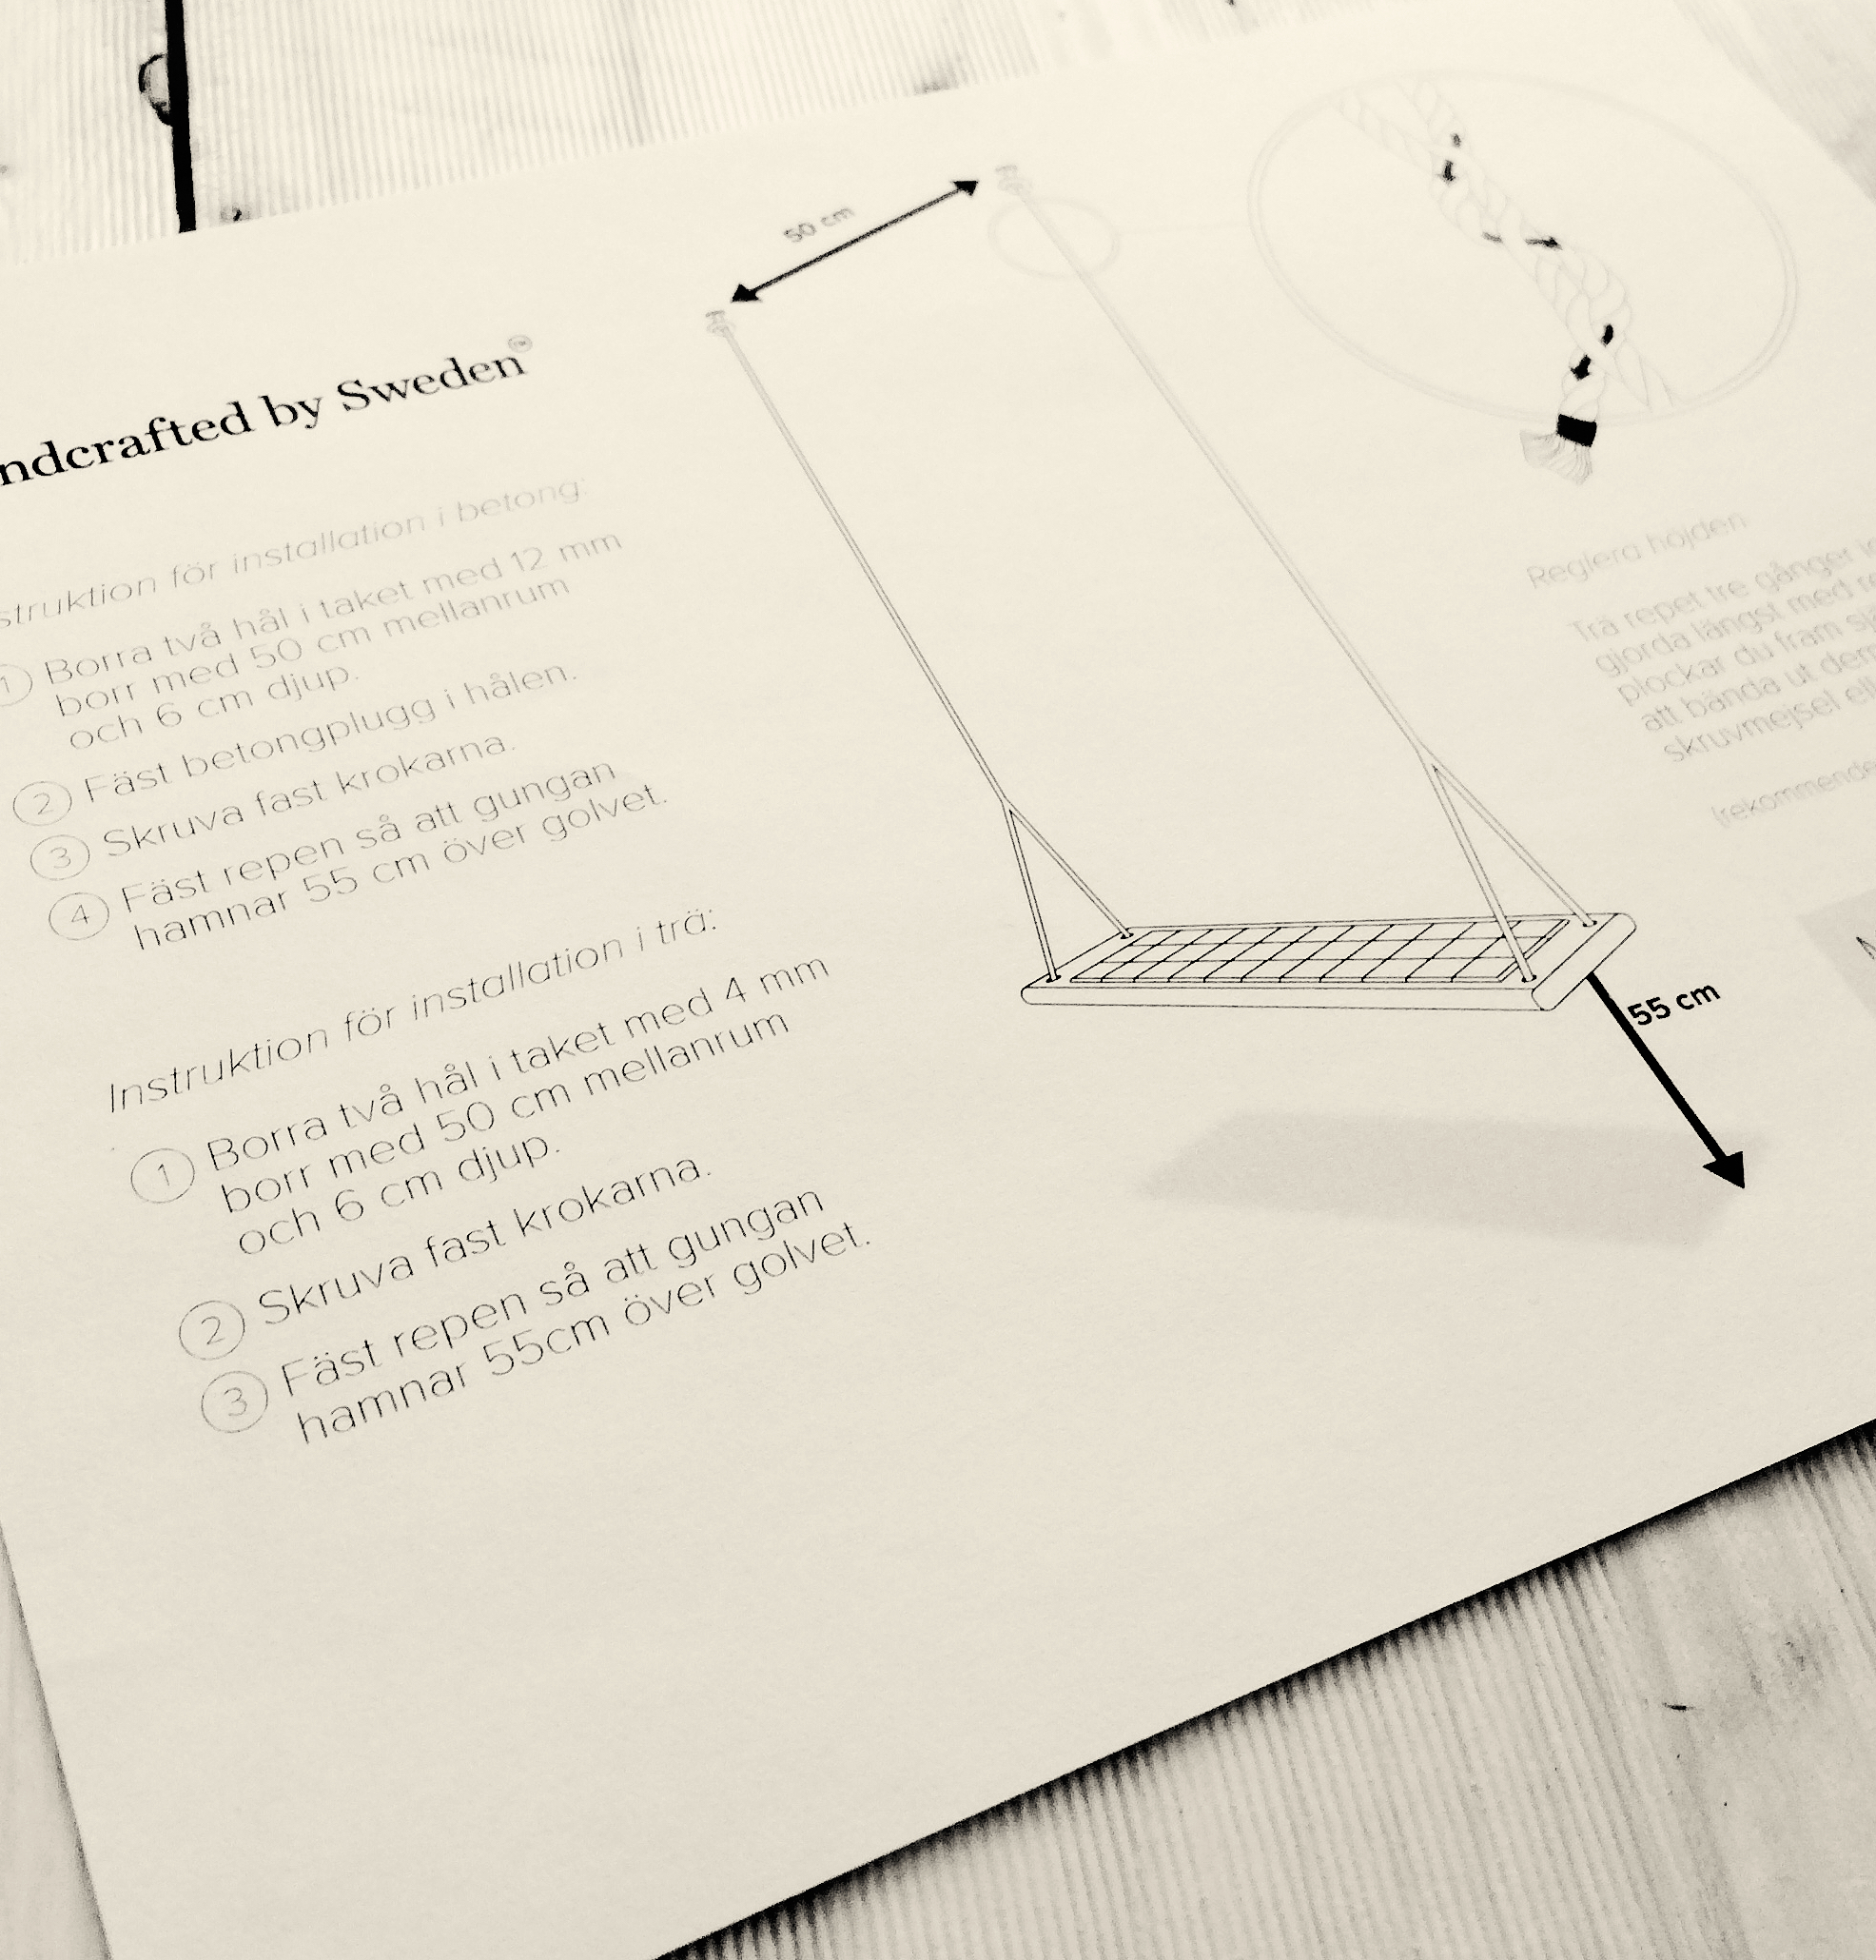 A small view of the instruction paper.